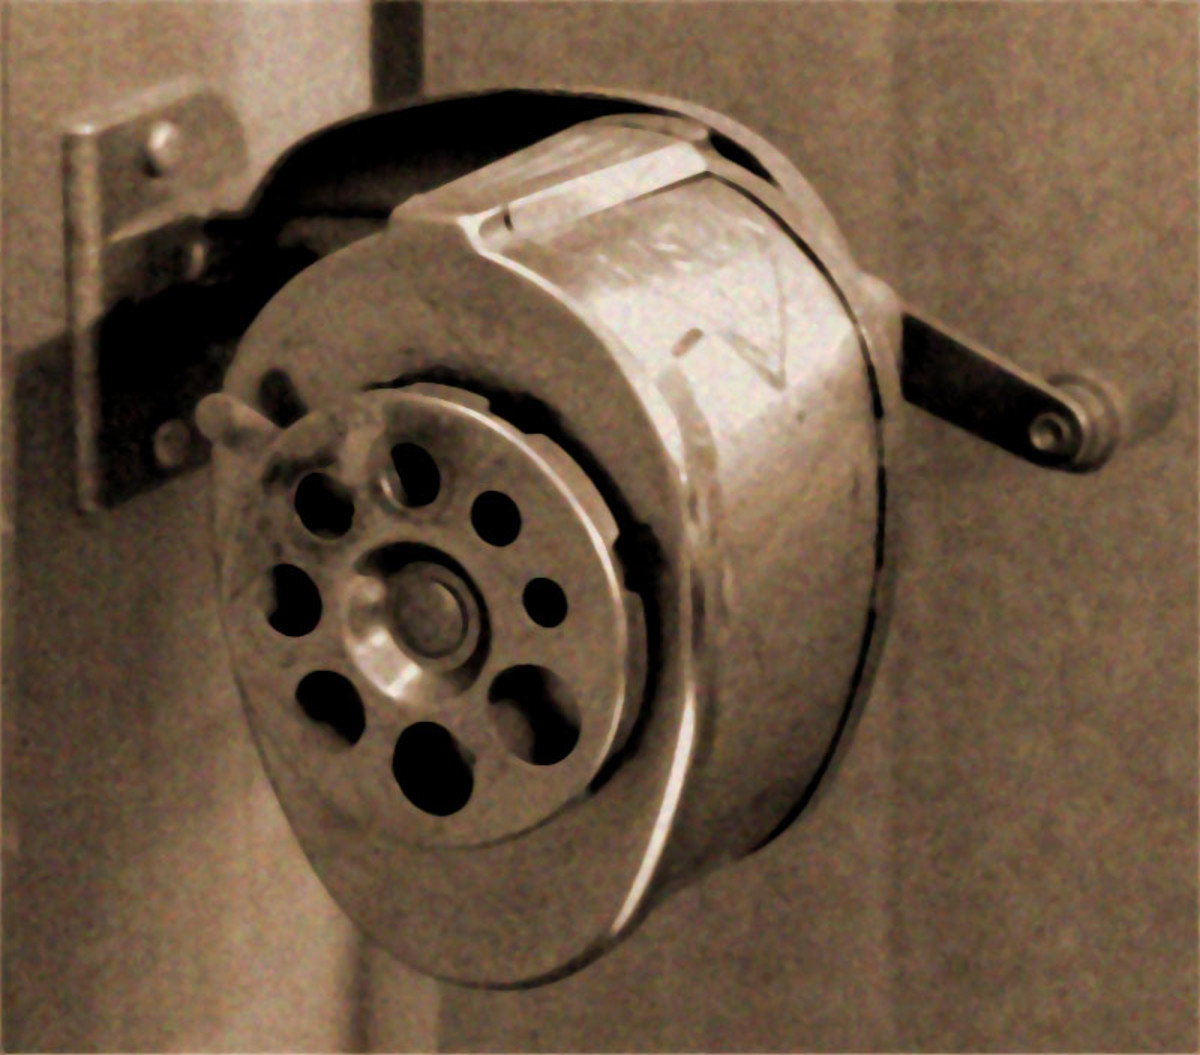 The school's wall-mounted pencil sharpener.